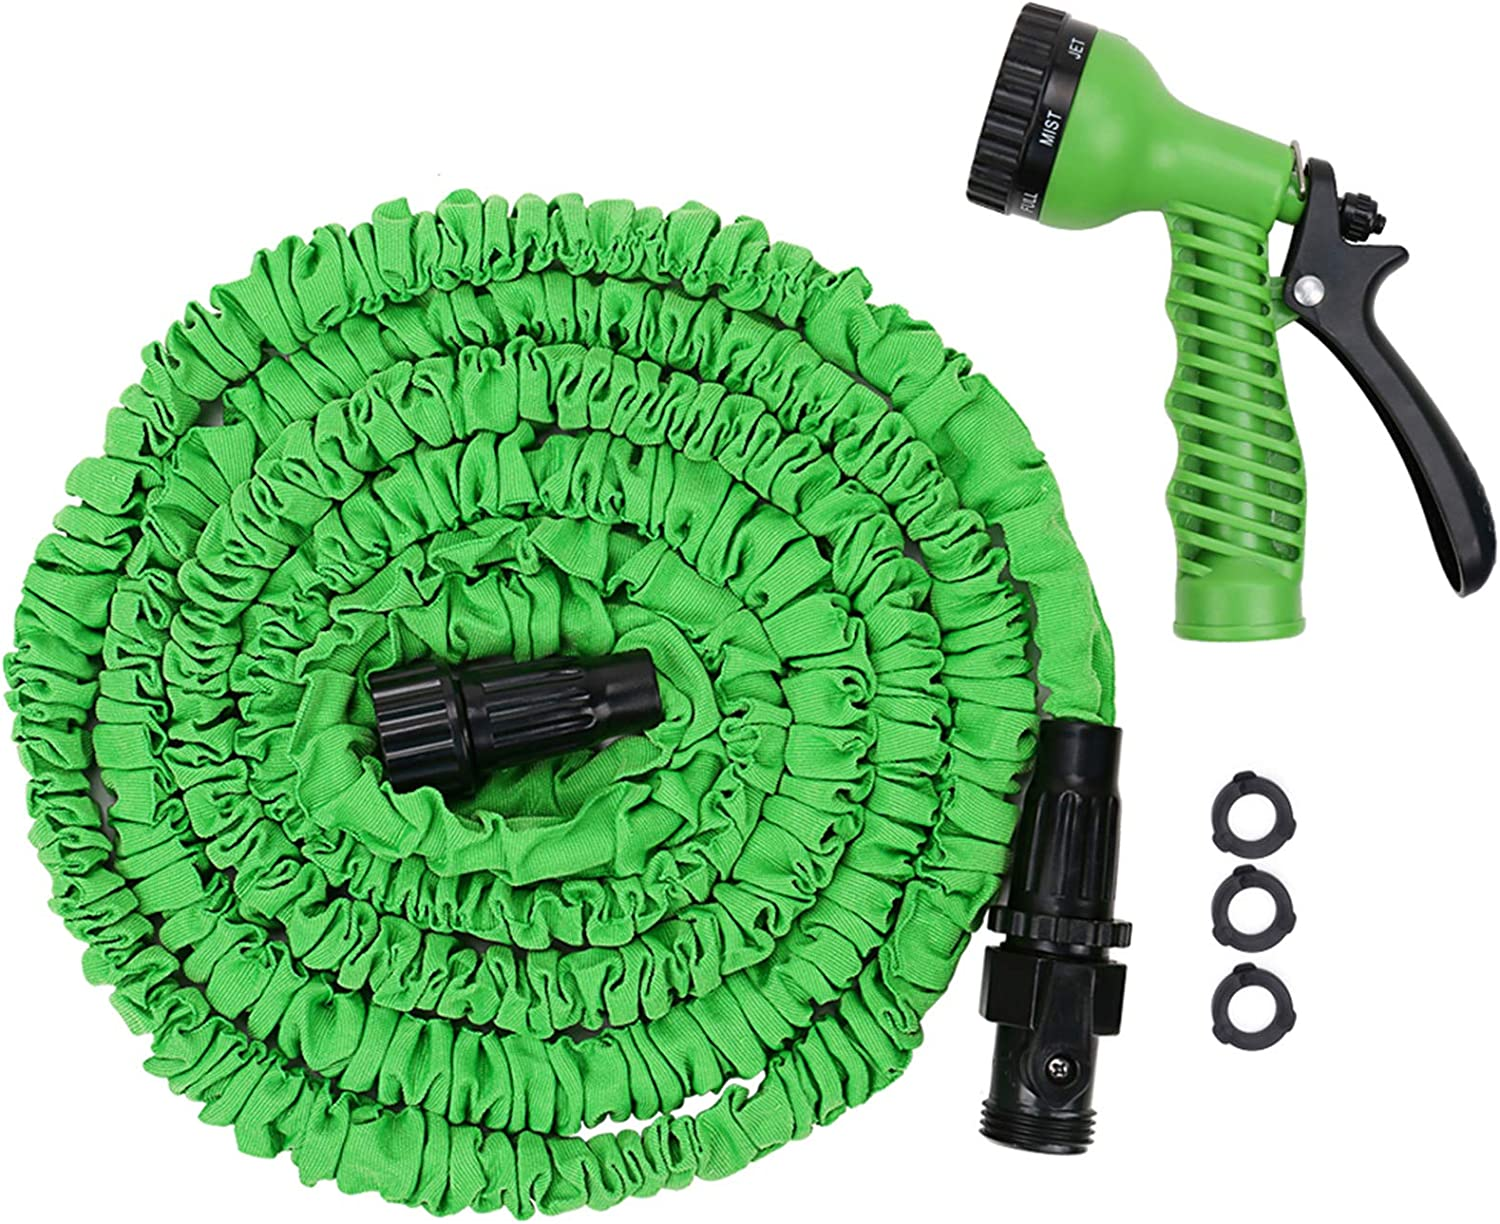 Micnaron Garden Hose,Green Water Hose, 50FT Expandable Garden Water Hose, Double Latex Core - Extra Strength Fabric Protection - 8 Functions Spray Nozzle, Collapsible Hose for Flowers and Plants